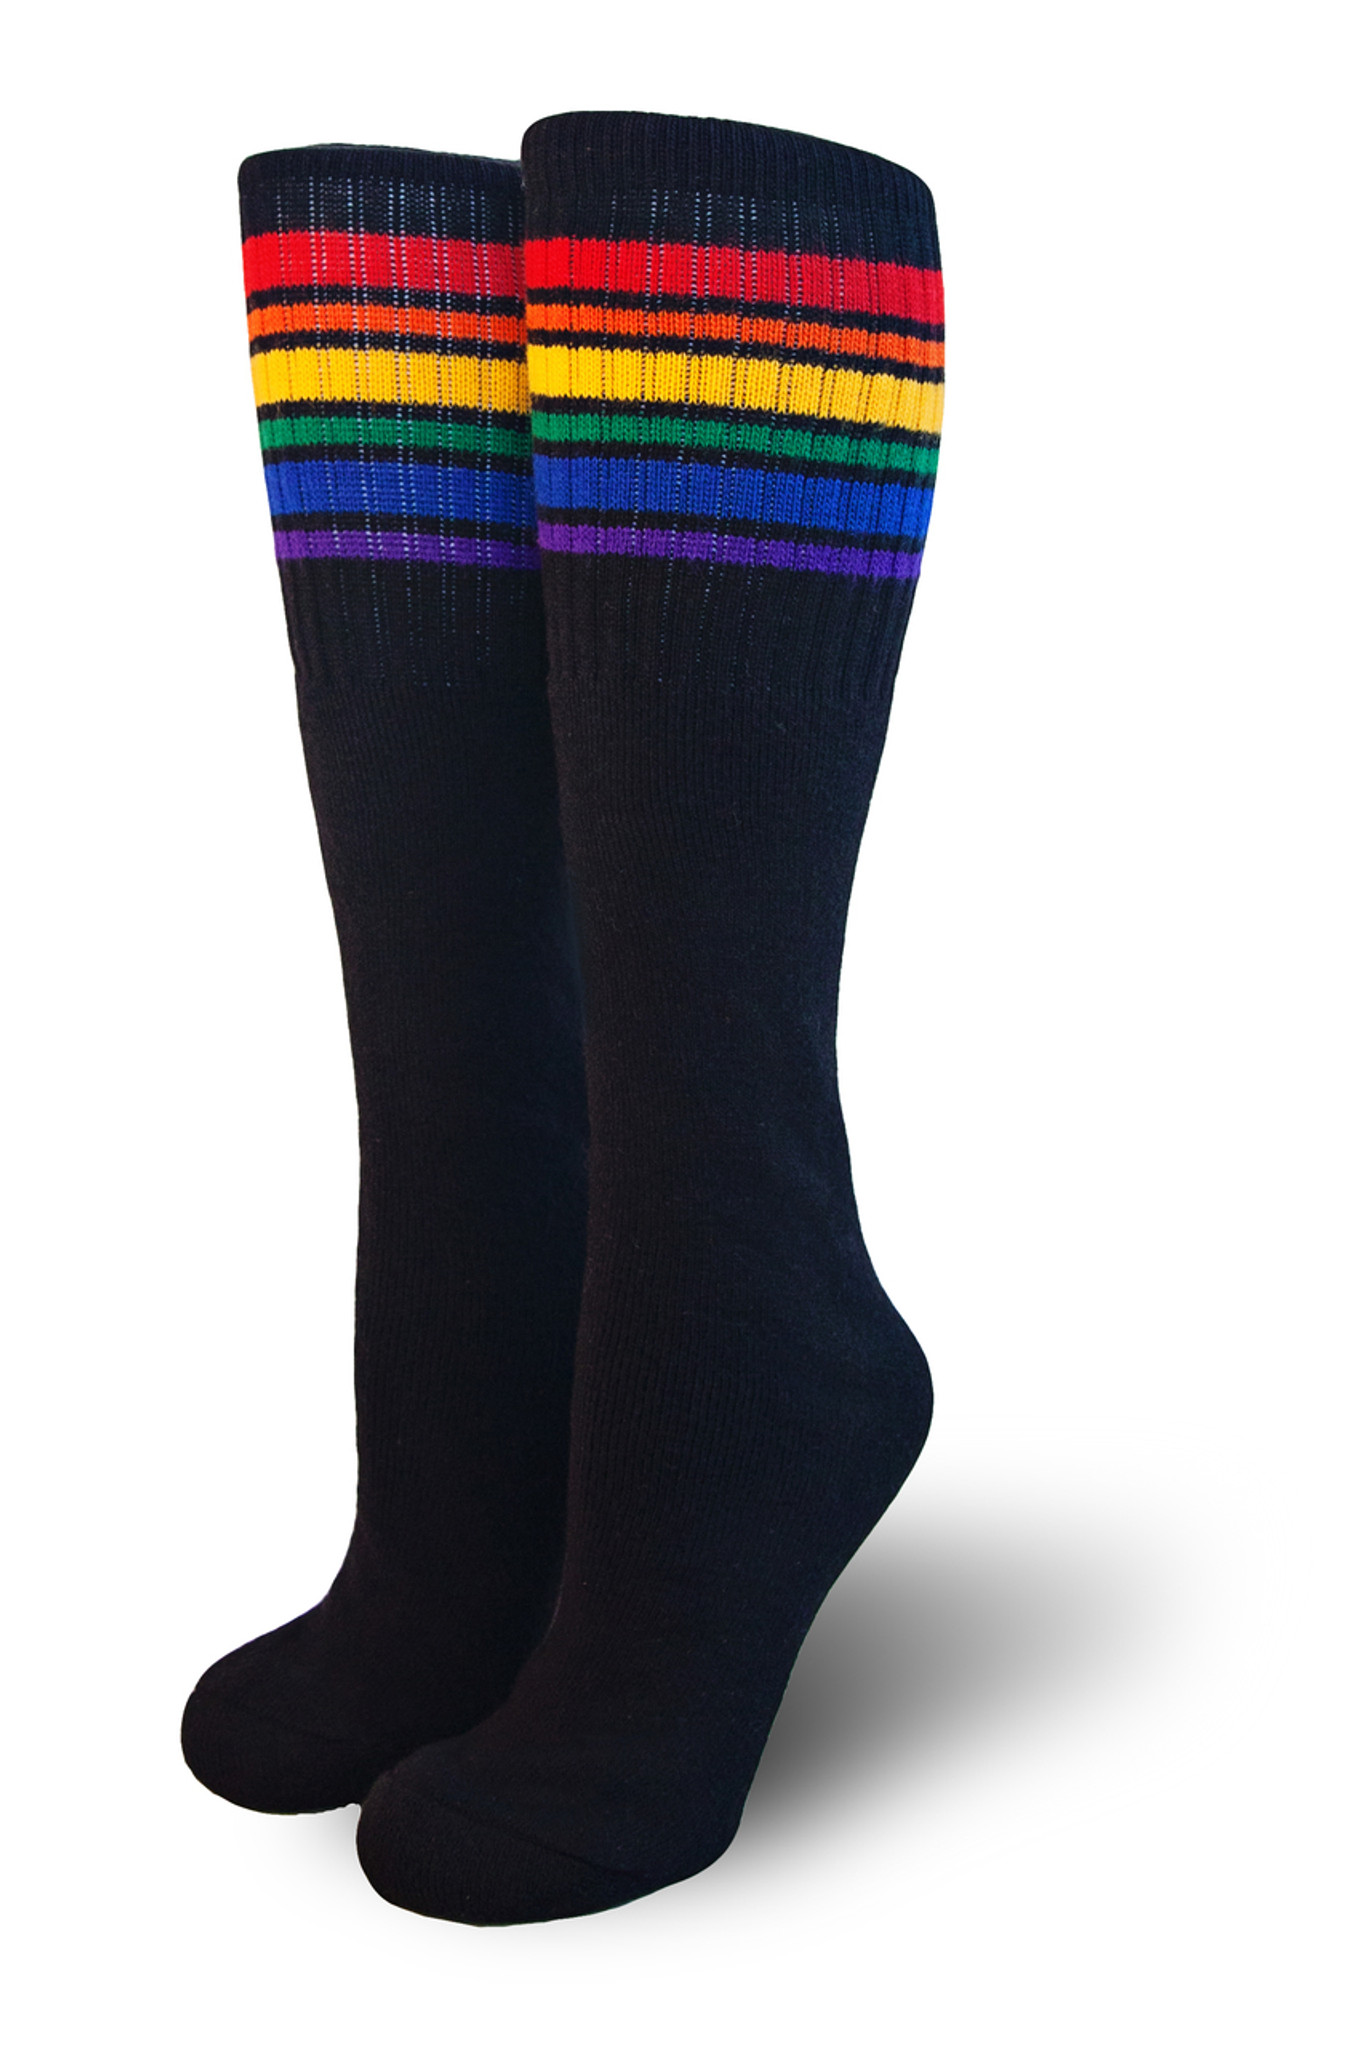 b529b774 Black rainbow striped pride socks. they look cool on everyone. Sport our  rainbow knee